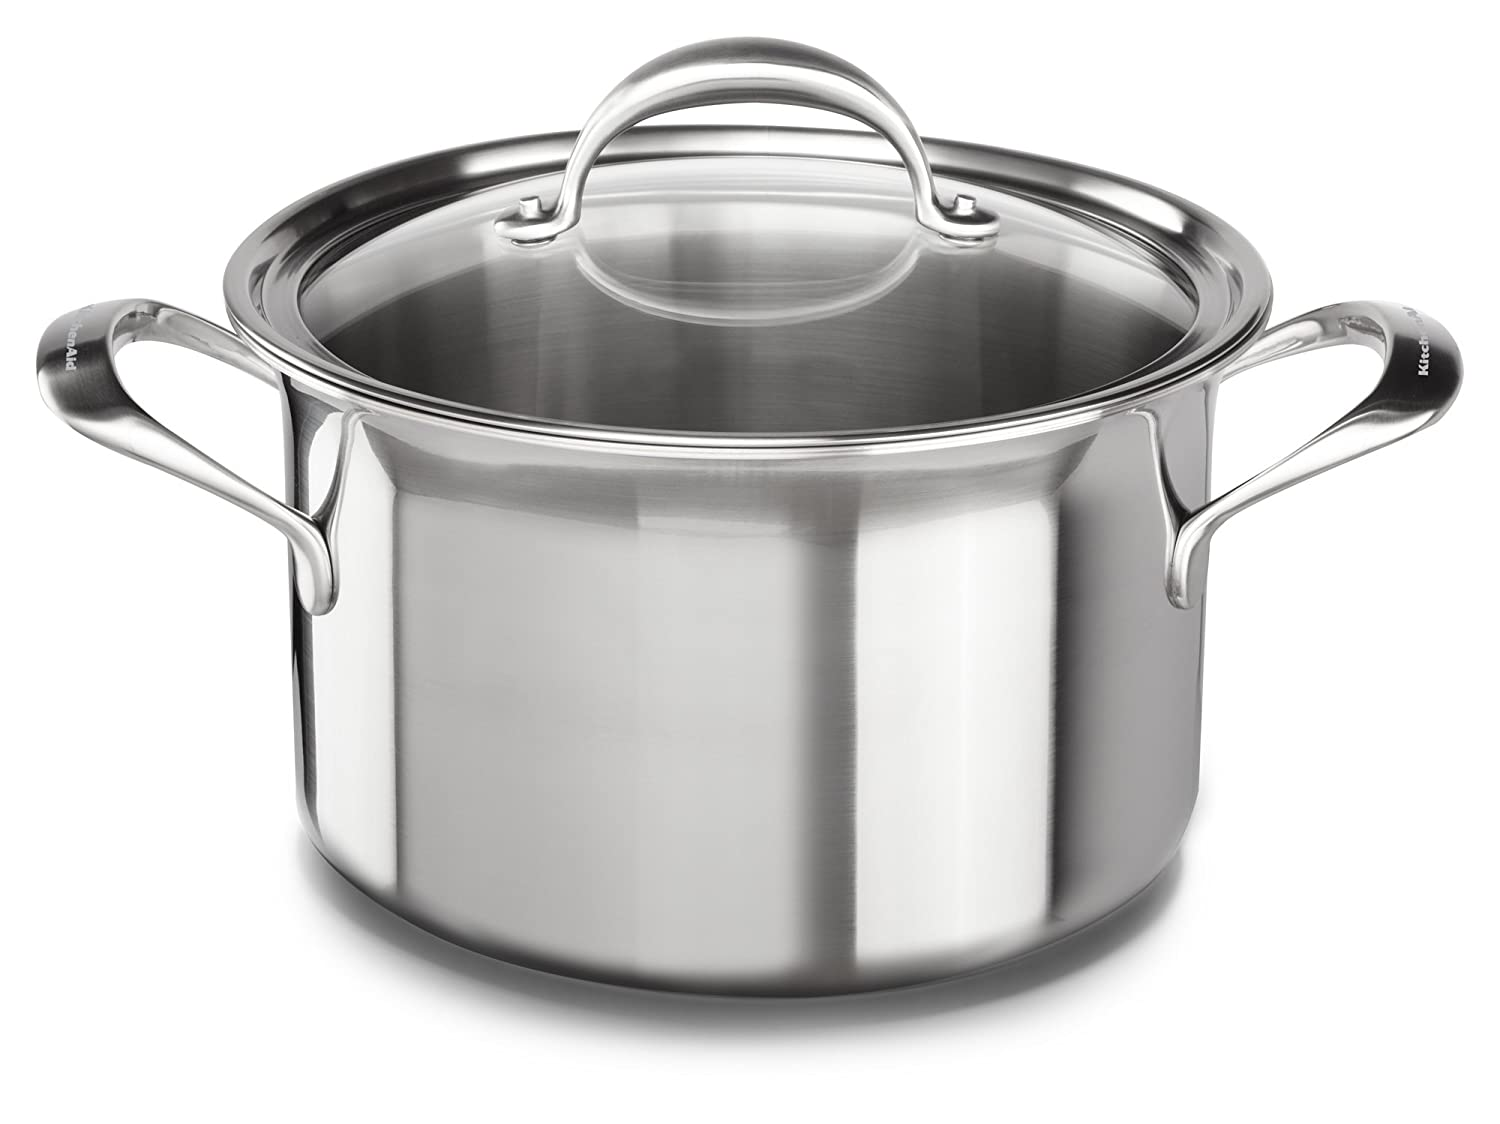 KitchenAid KC2C80SCST 5-Ply Copper Core 8 quart Stockpot with Lid - Stainless Steel, Medium, Stainless Steel Finish